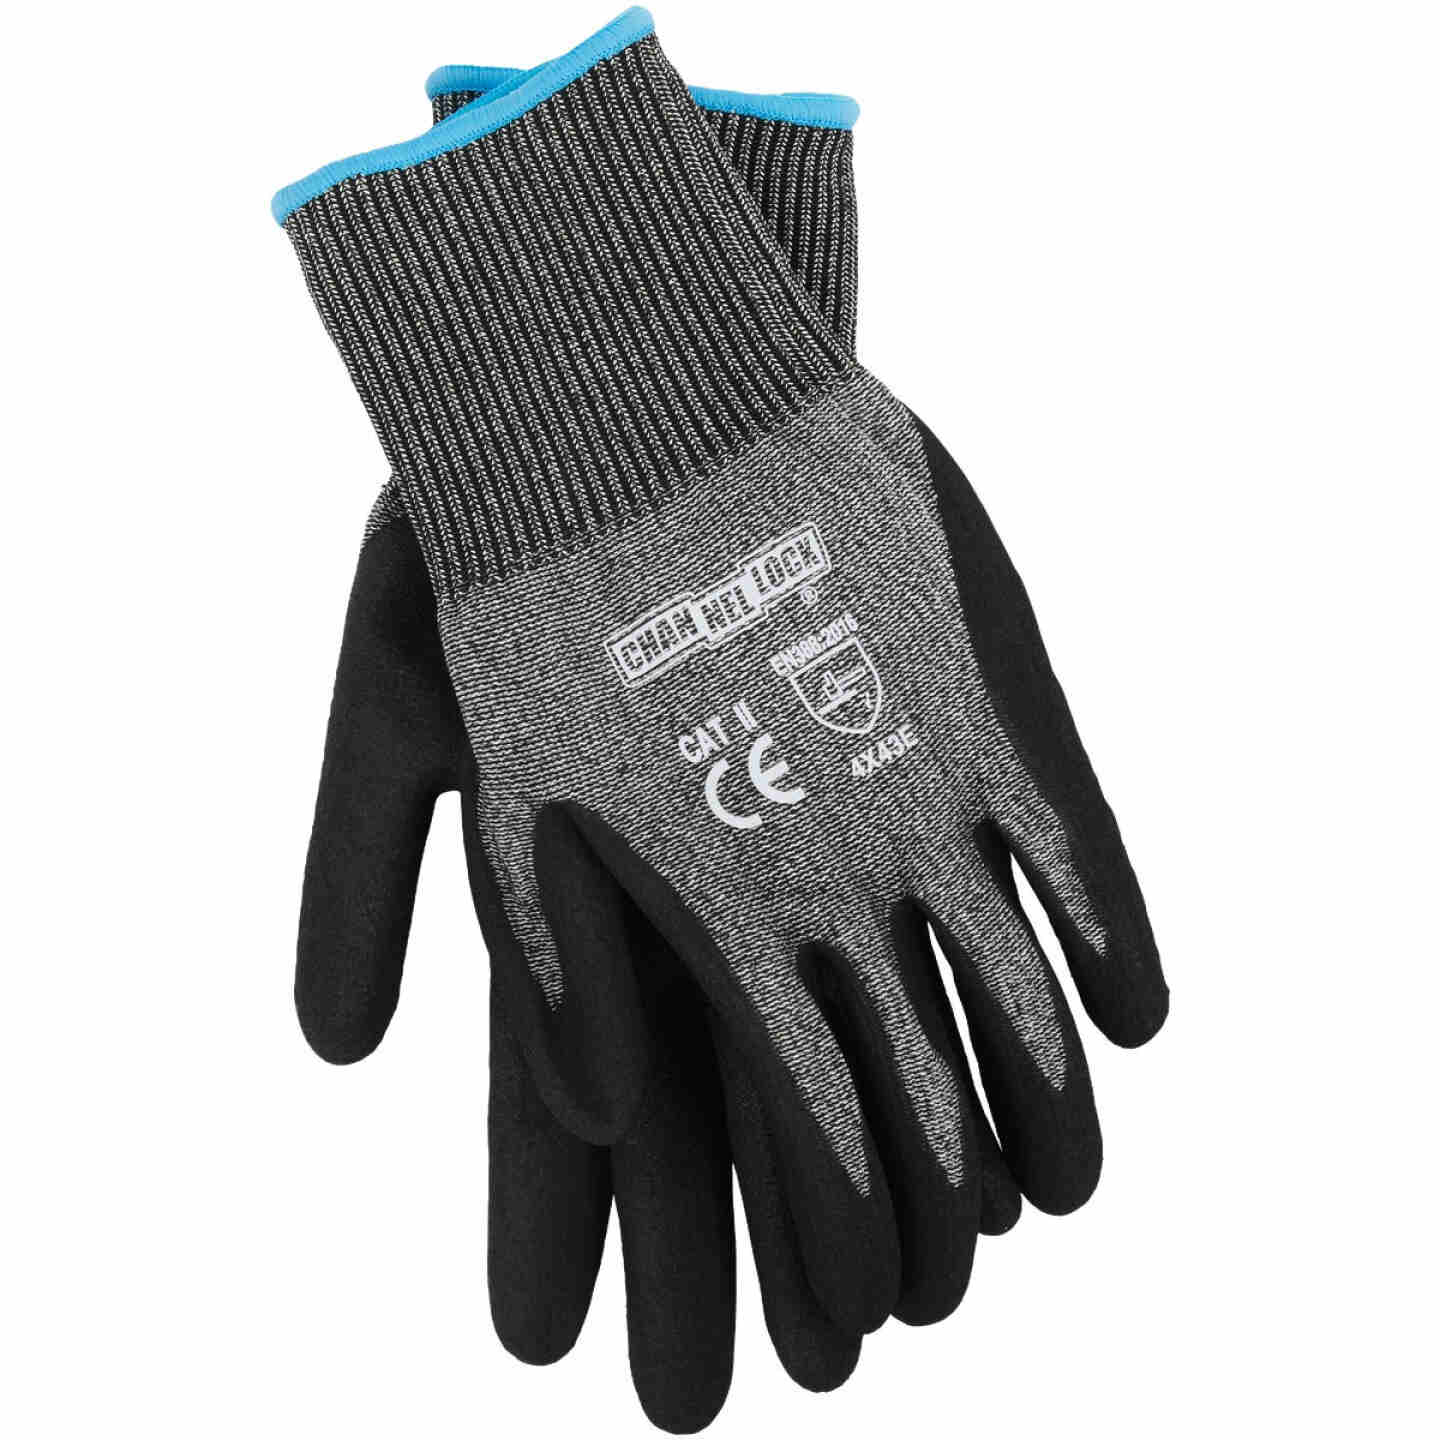 Channellock Men's XL Nitrile Dipped Cut 5 Glove Image 1